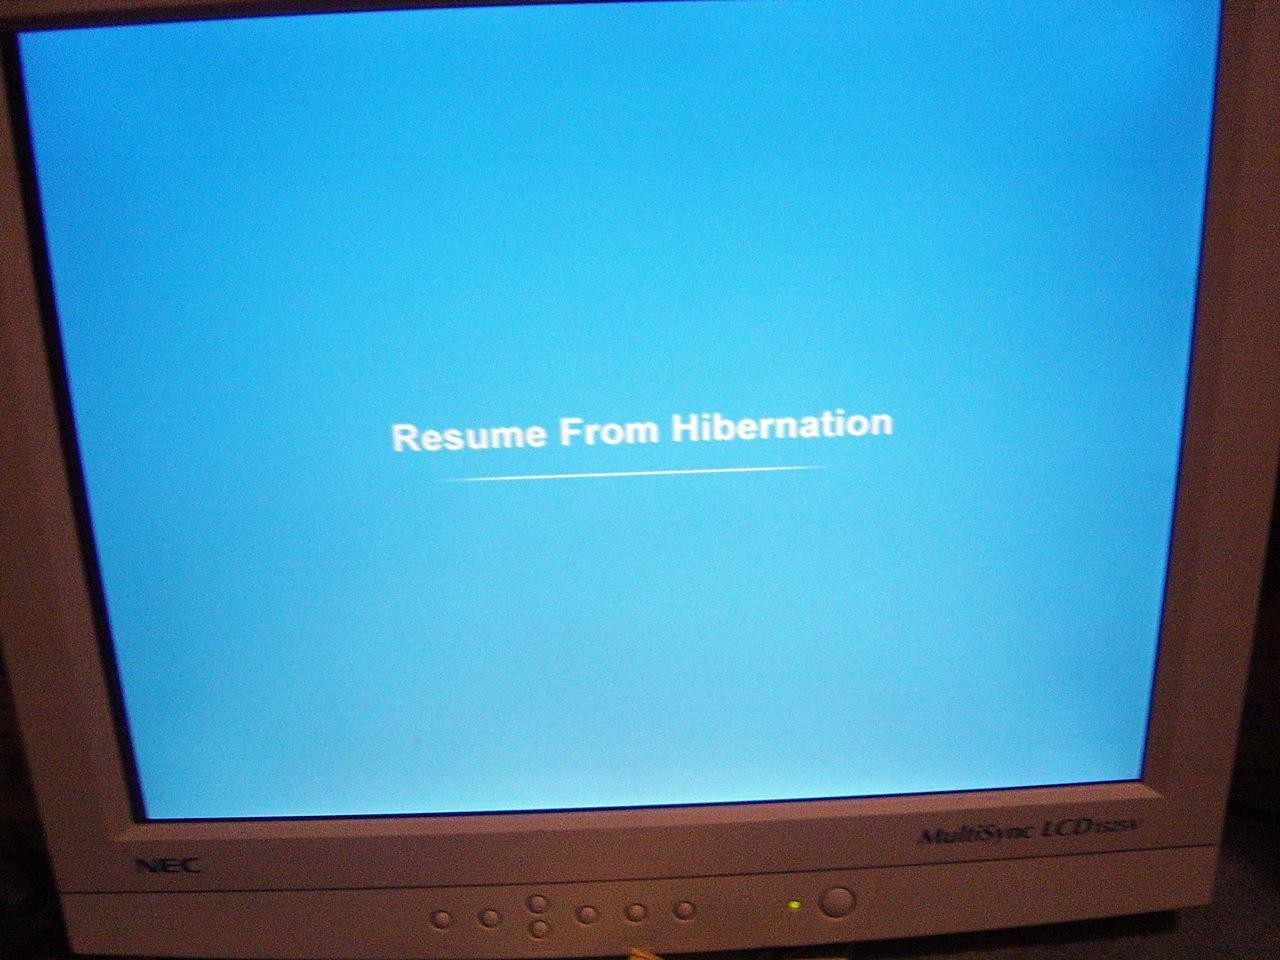 Resume From Hibernation Screen In XP SP3